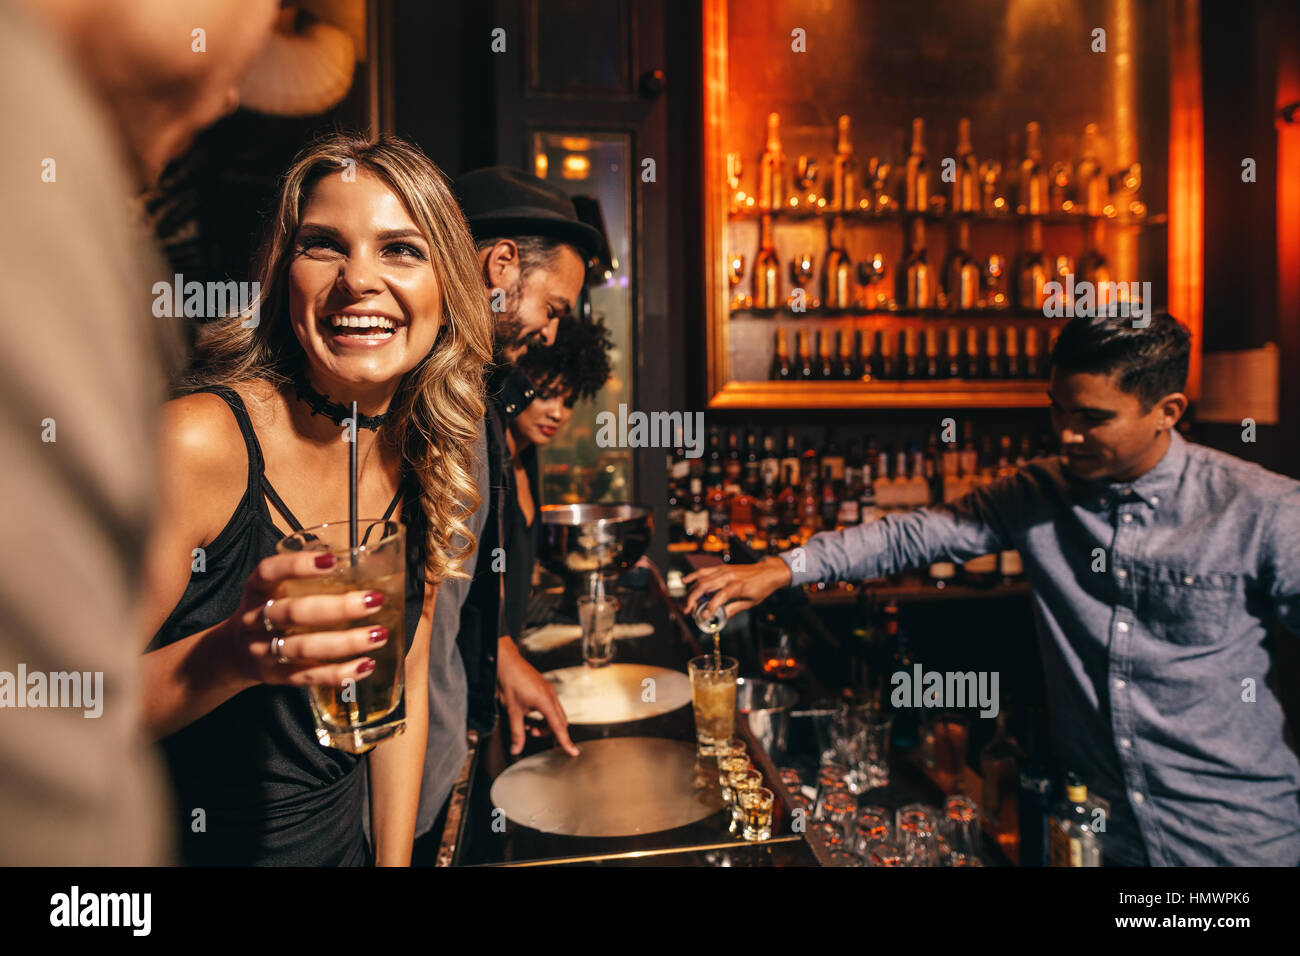 Beautiful young woman with her friends at bar. Young people enjoying a night at club. - Stock Image